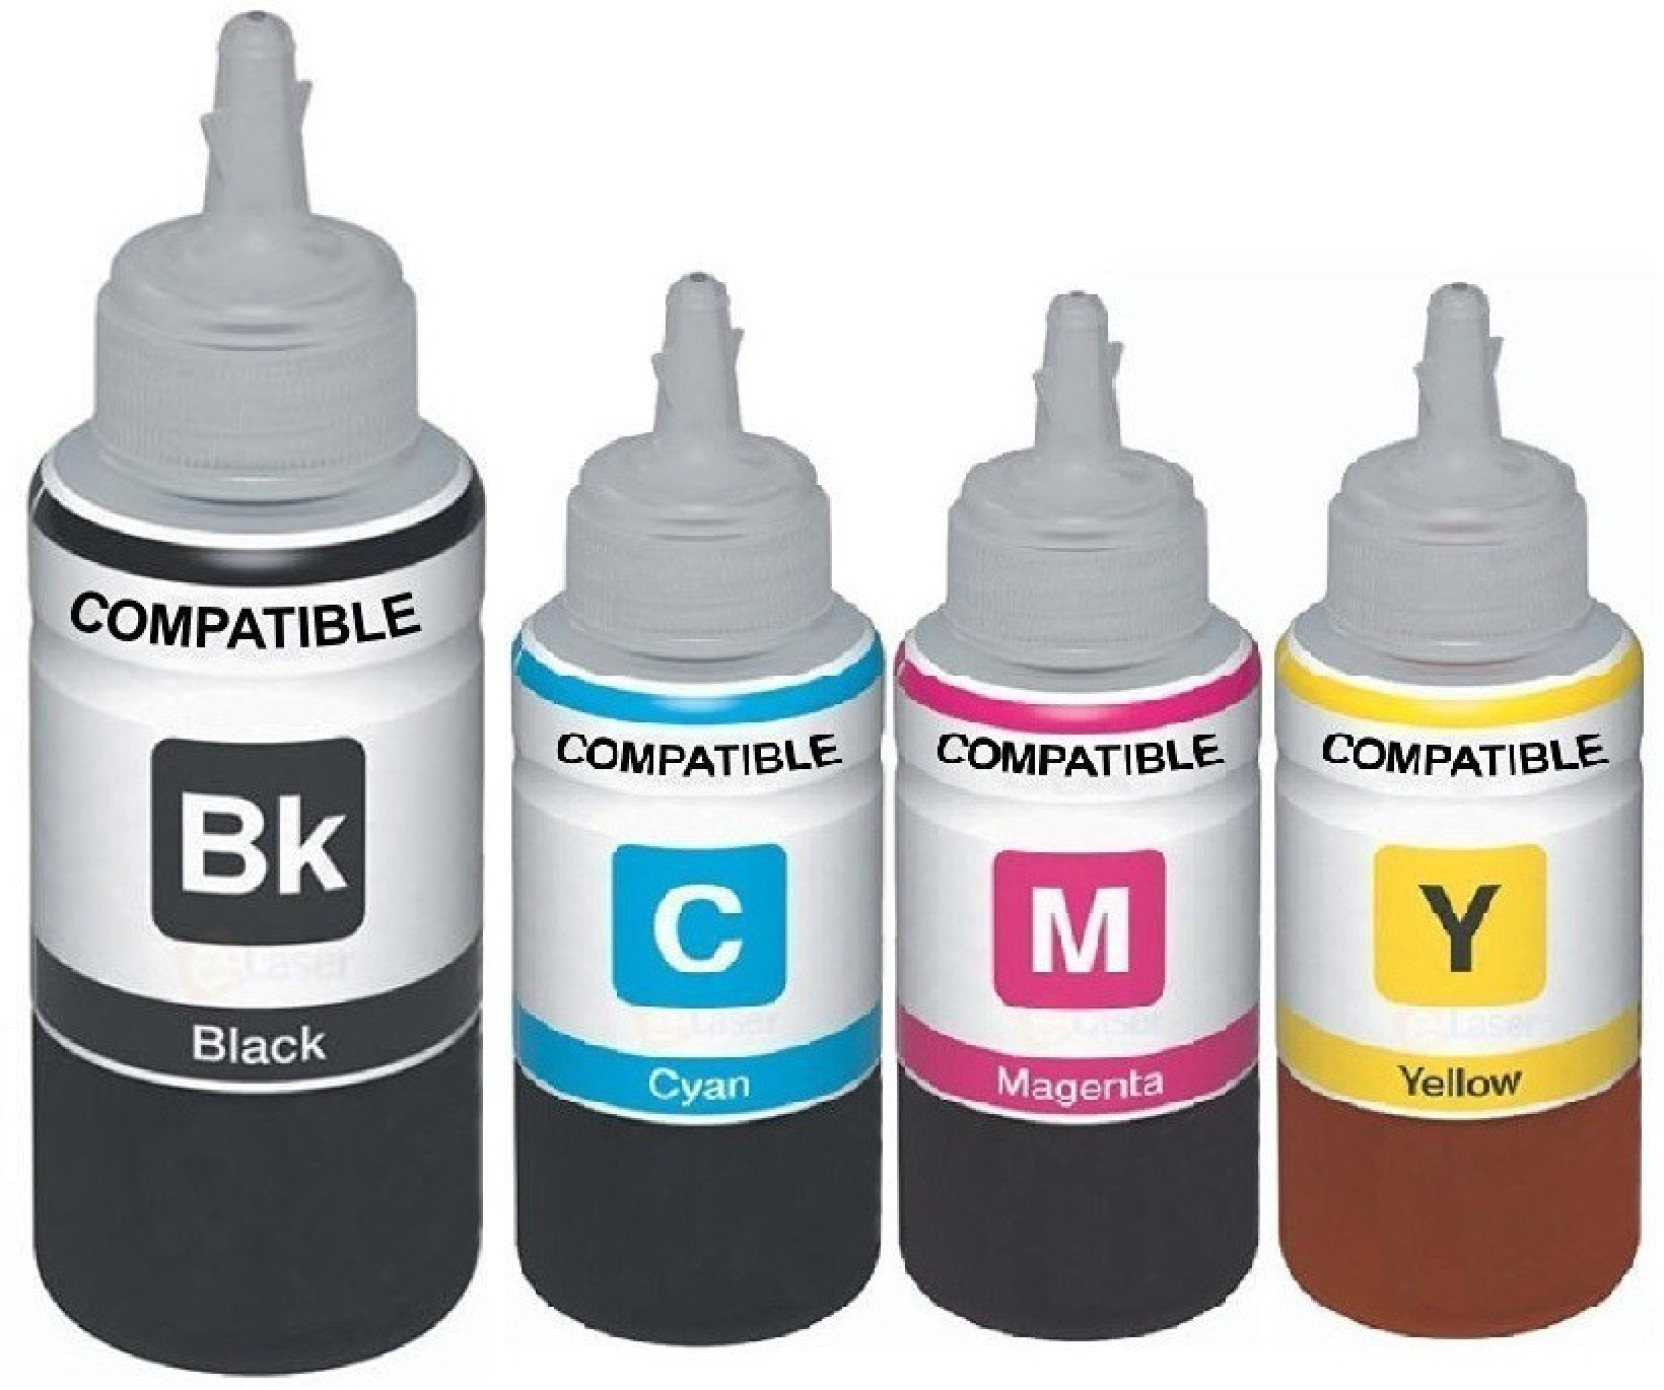 Print Cartridge Gi 790 Ink Set For Canon G1000 G2000 G3000 Balck Head Color Original Compare